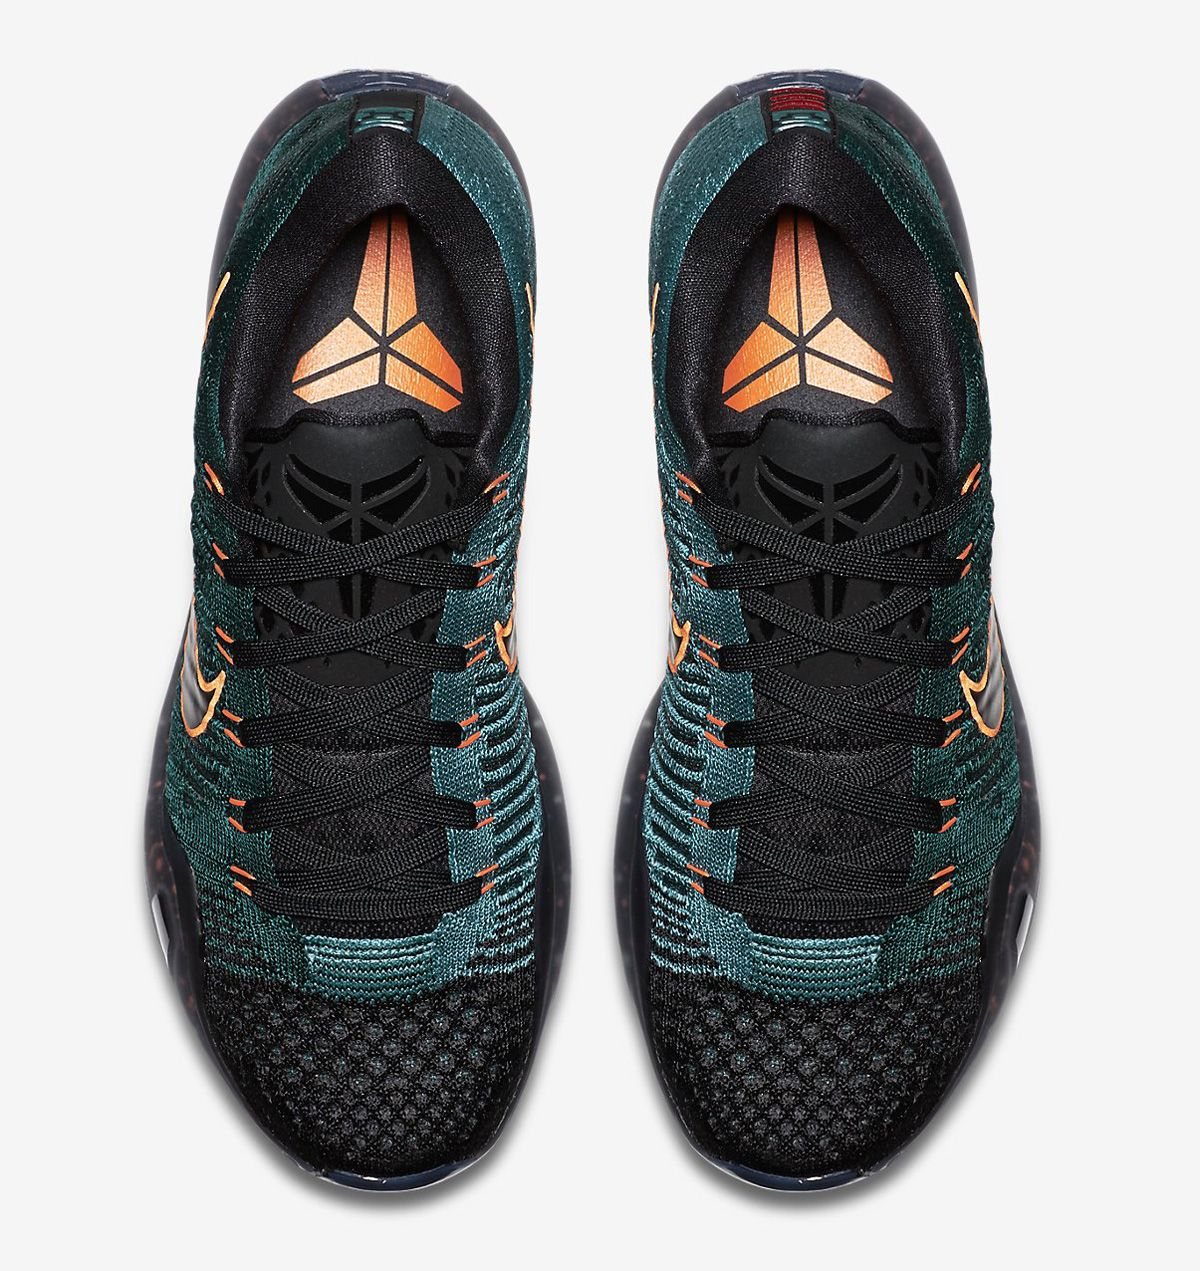 sports shoes 71011 e878d ... ireland nike kobe x elite low drill sergeant eu kicks sneaker magazine  b24f3 9f2a2